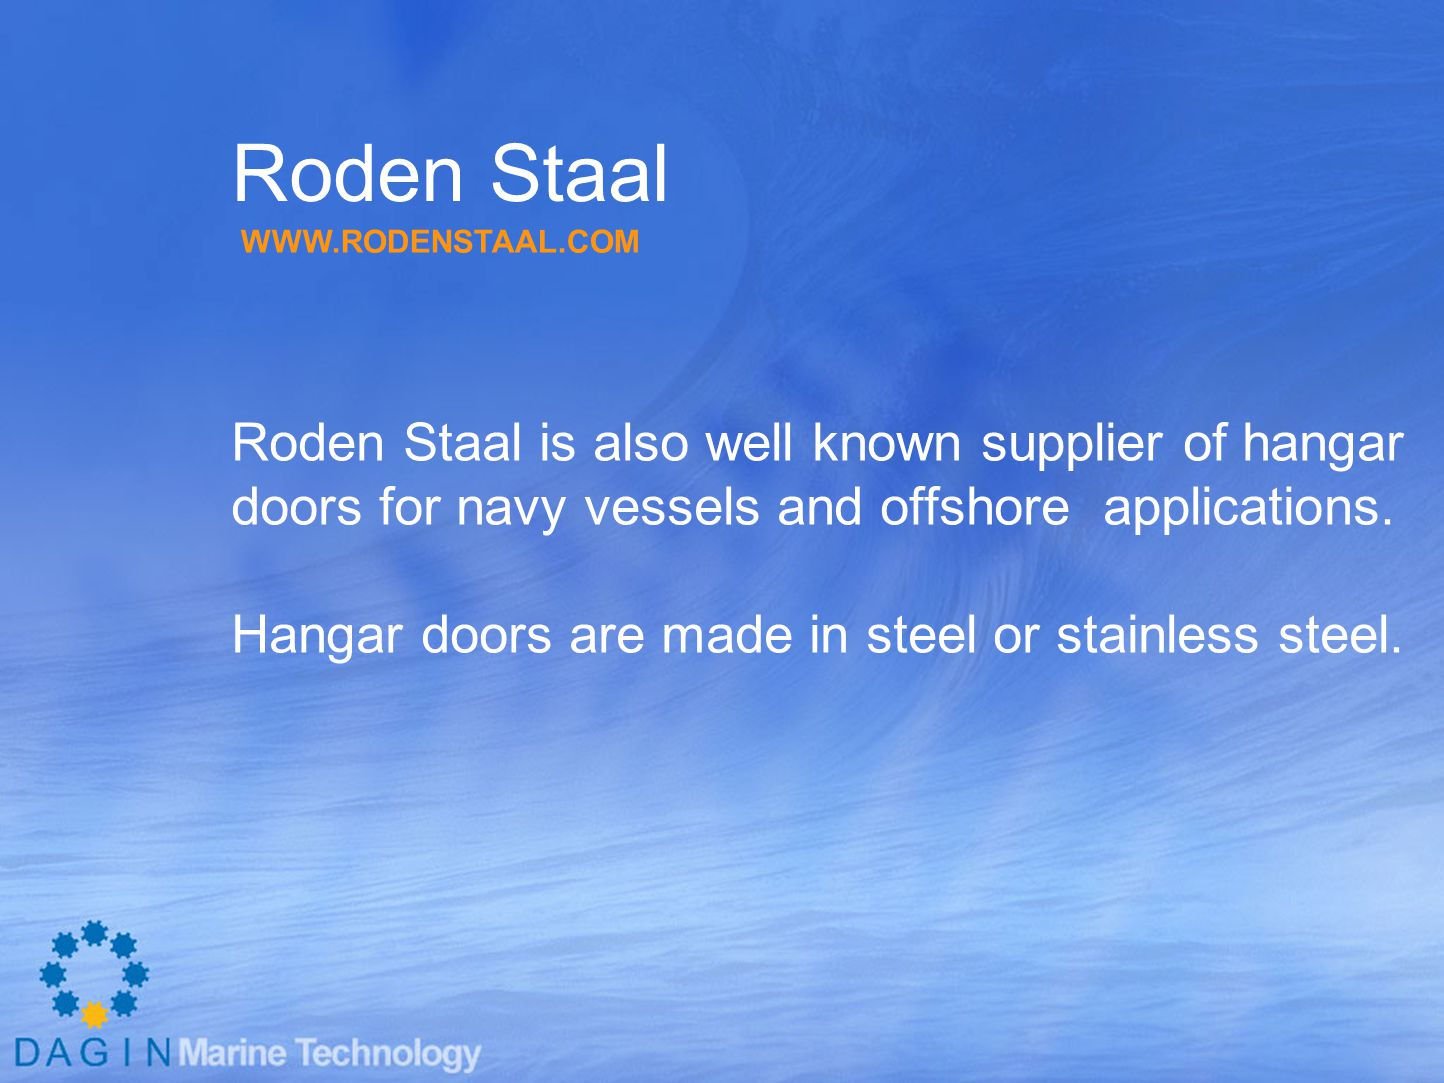 Roden Staal Roden Staal is also well known supplier of hangar